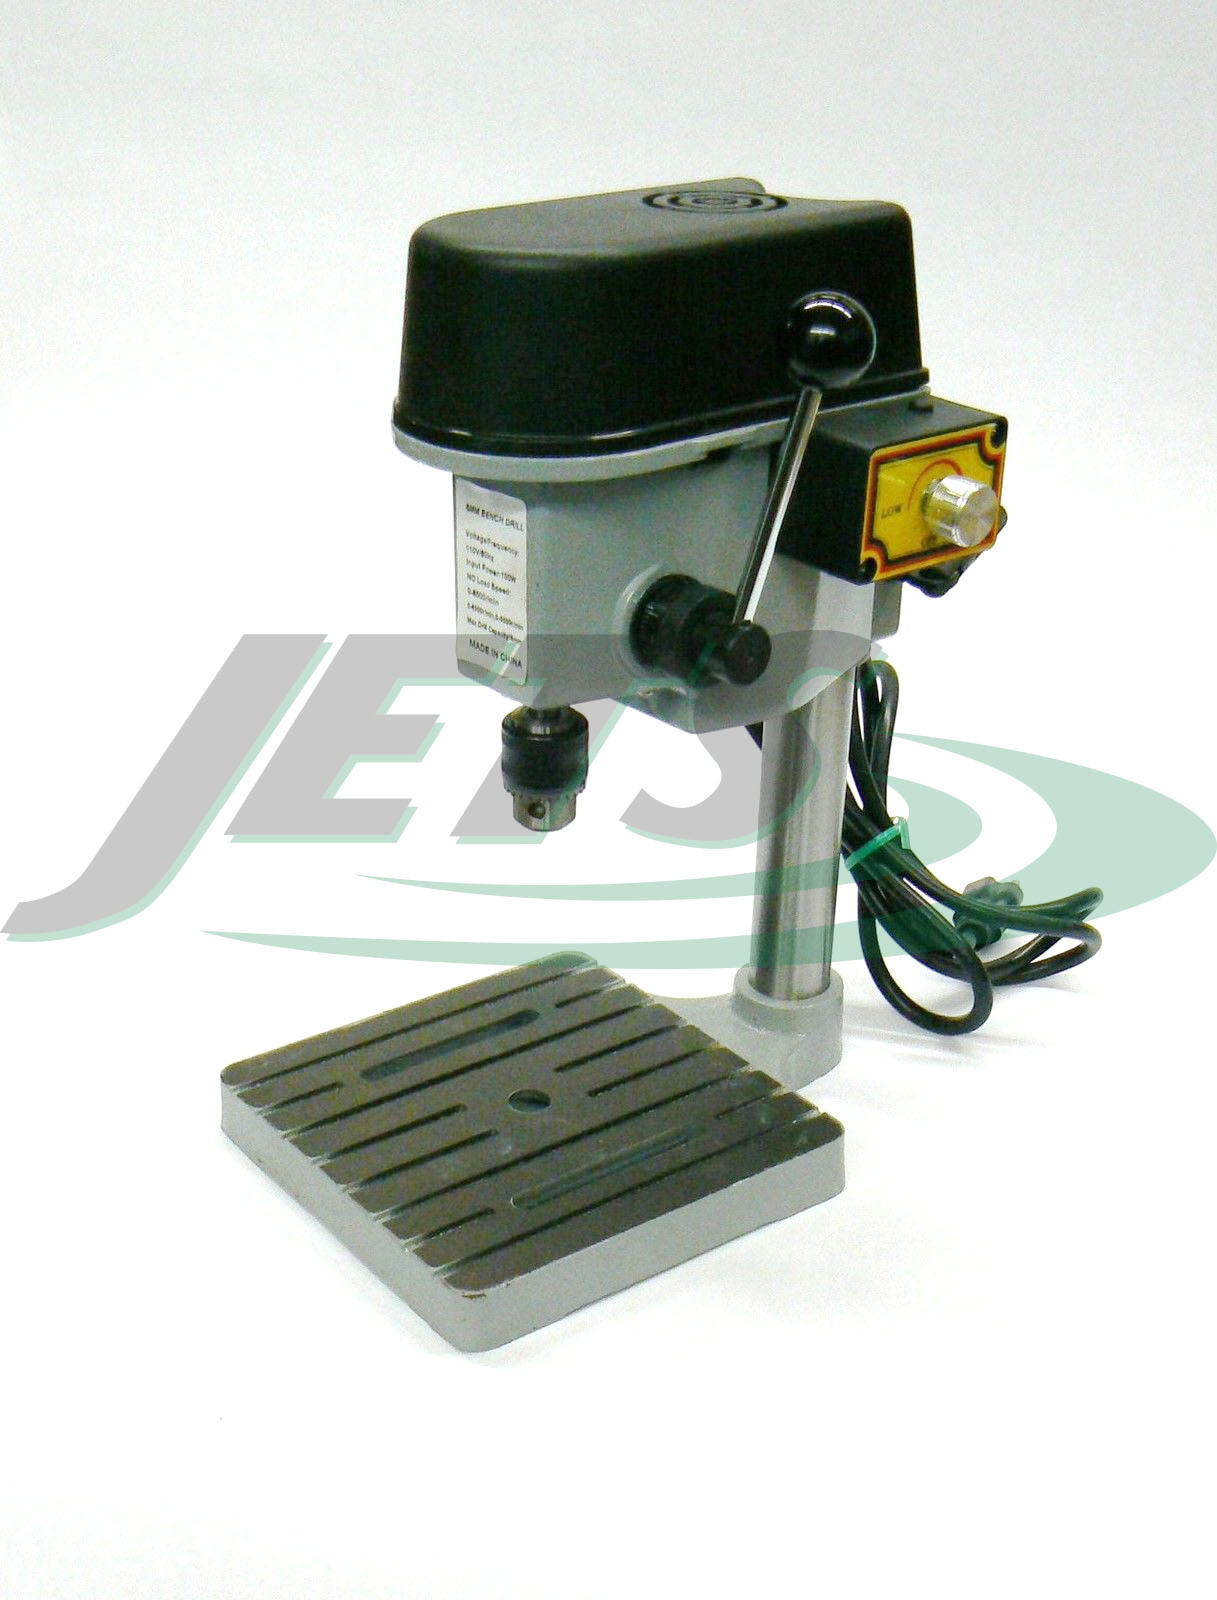 SE 97511MDP 3-Speed Mini Drill Press Bench for Jewelers & Ho